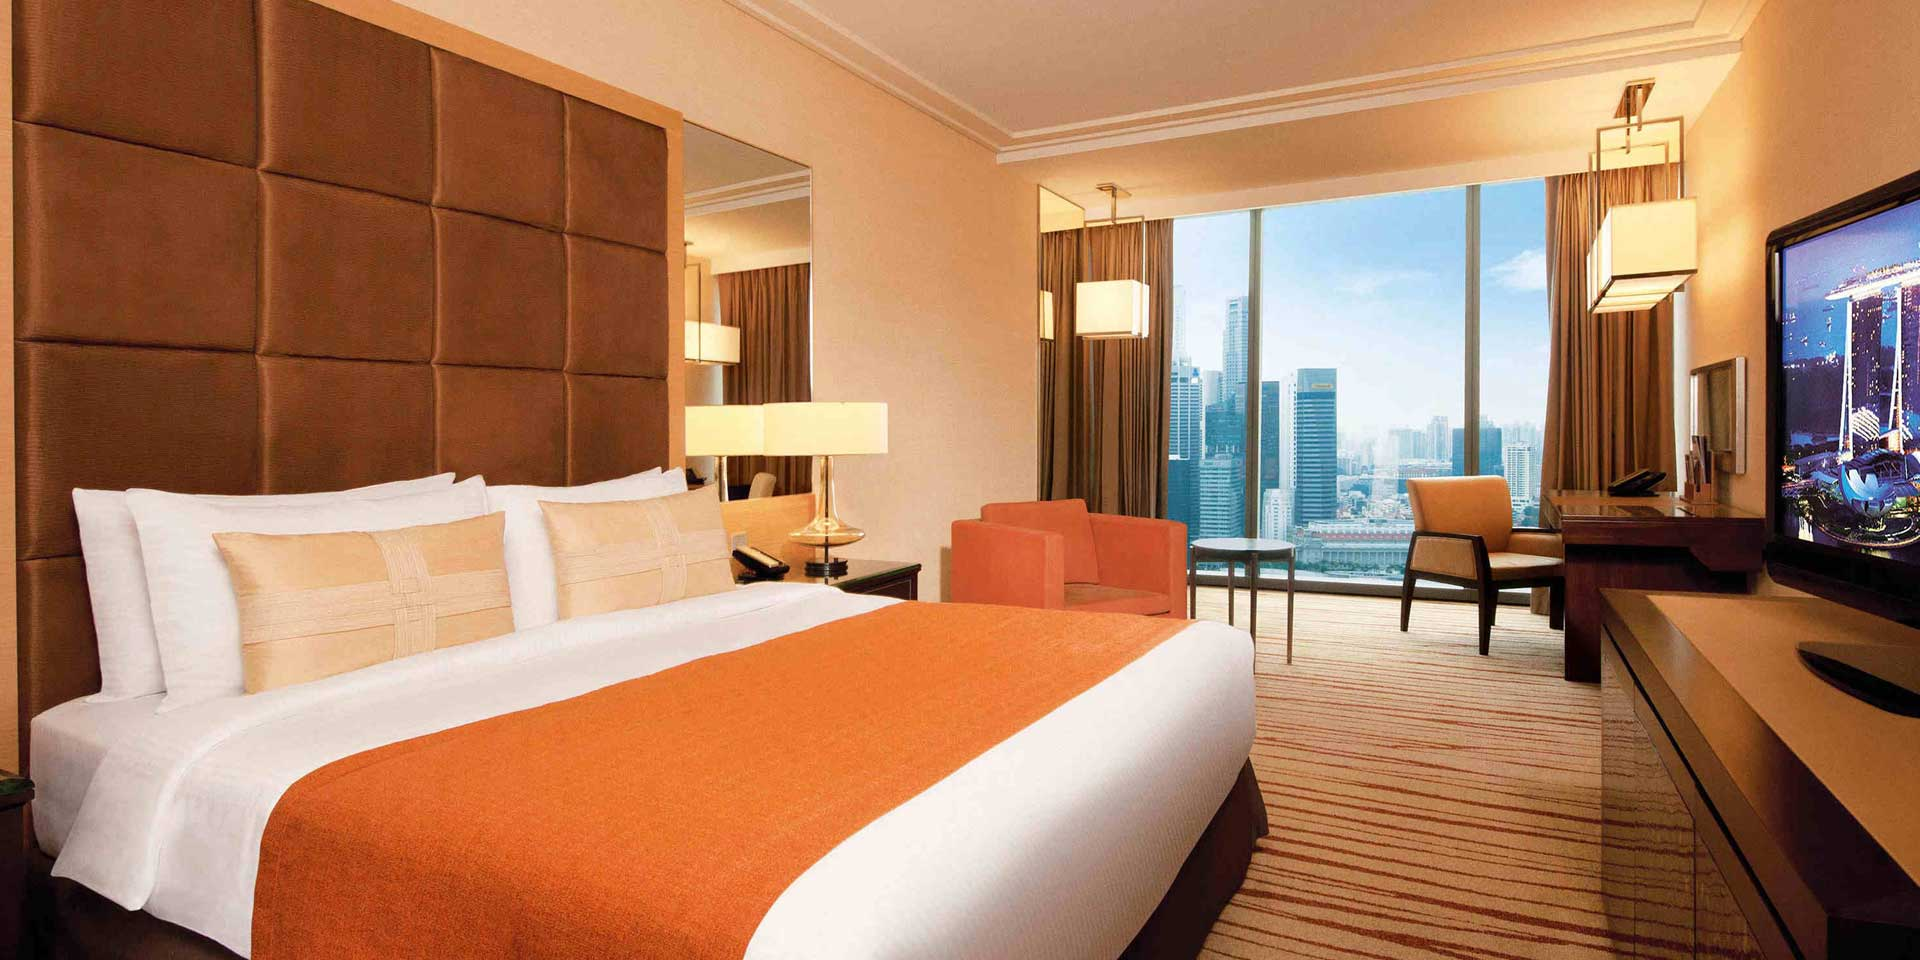 Deluxe room in marina bay sands singapore hotel for Best private dining rooms twin cities